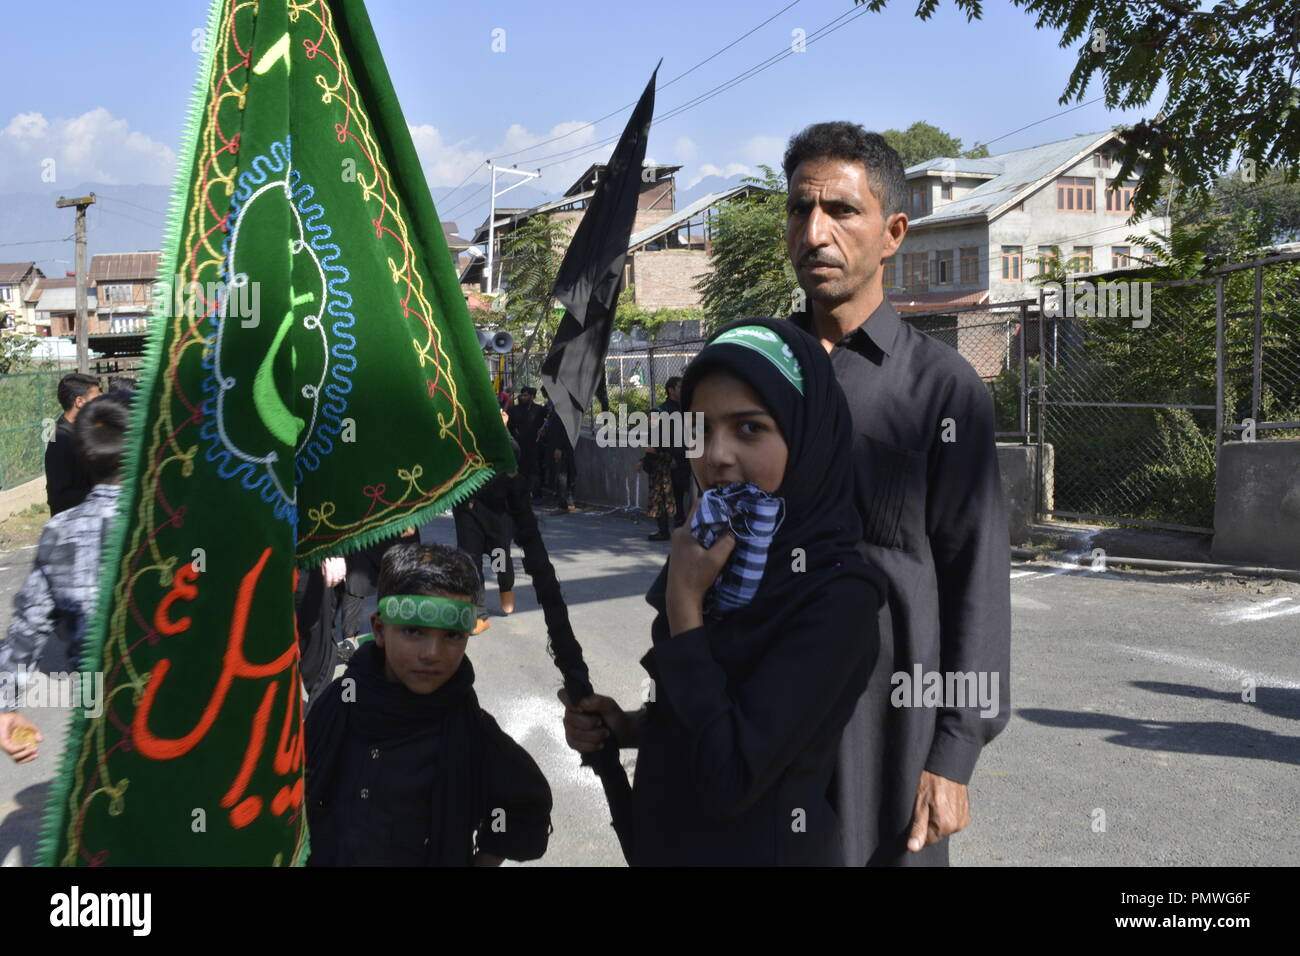 Kashmir Shiite Muslims girl seen holding a flag during the seventh day of Ashura. Ashura marks the martyrdom anniversary of the Prophet Muhammed's grandson the revered Imam Hussein who was killed in Karbala, Iraq in 680 AD in southern Iraq in the seventh century. - Stock Image